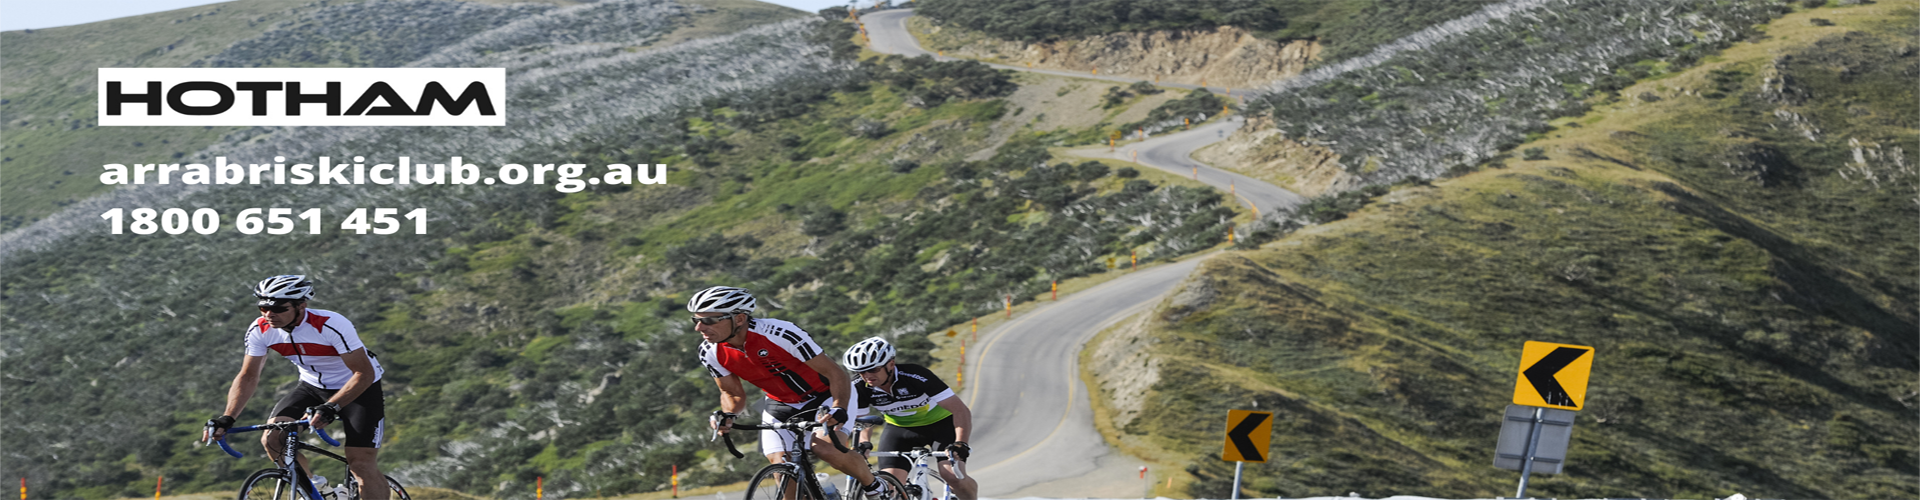 ride 7 peaks hotham accommodation